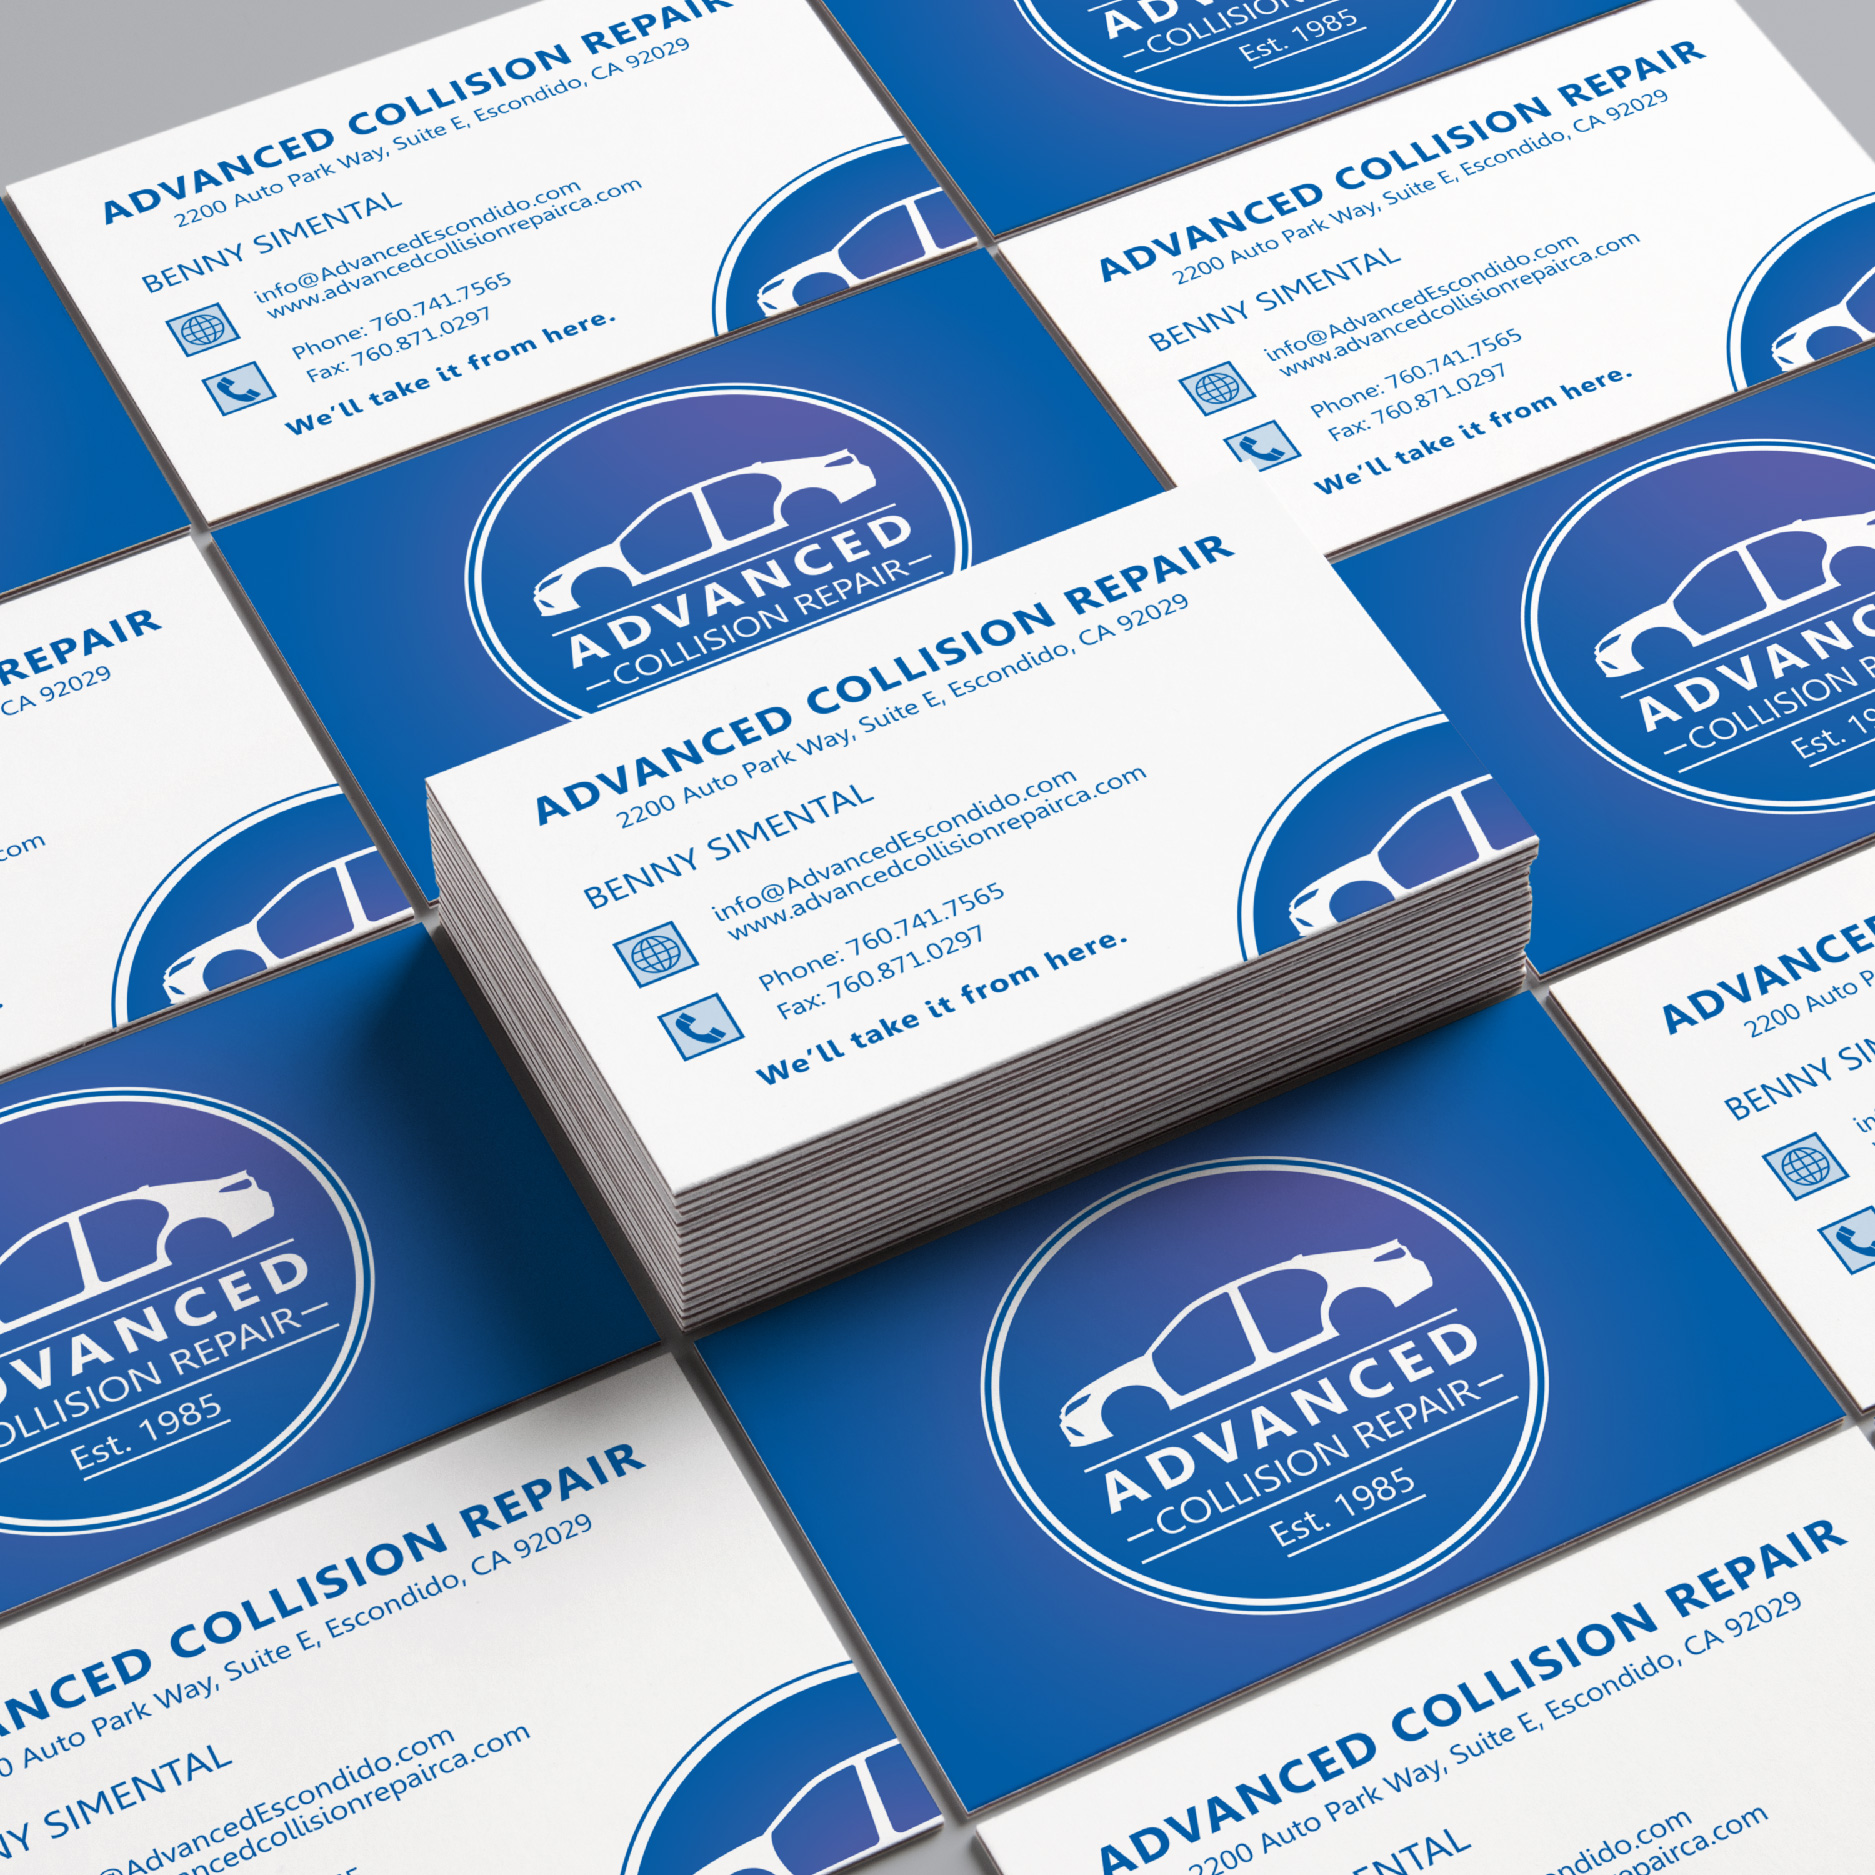 Advanced Collision Repair Business Cards